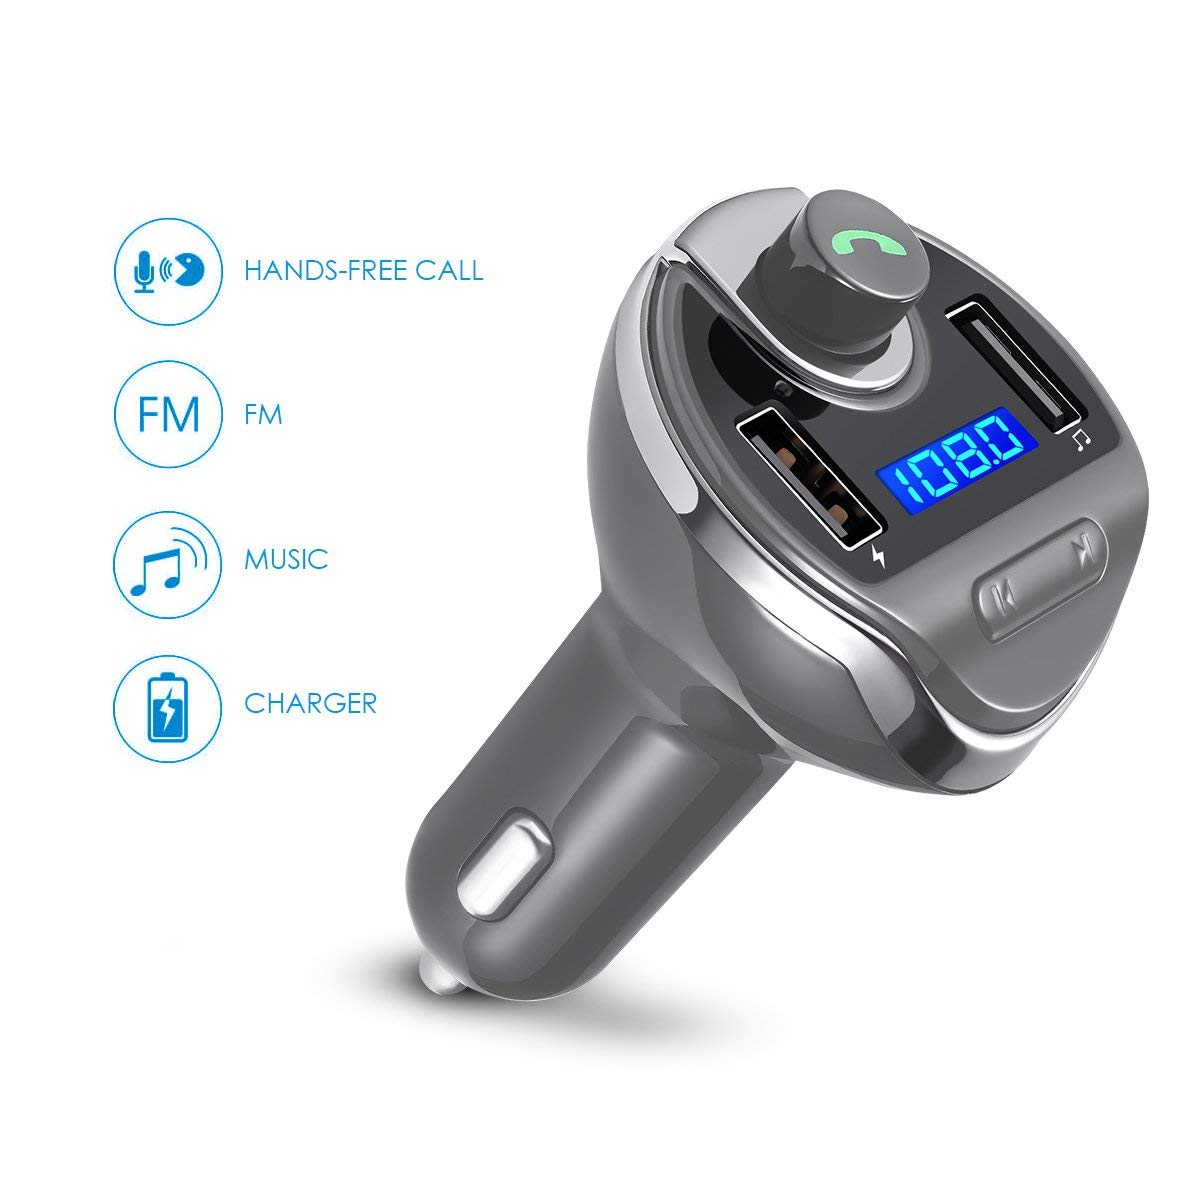 USB Car Bluetooth FM Radio Transmitter, Jelly Comb Wireless Bluetooth FM Transmitter Radio car auxiliary adapter Car Kit with Dual USB Charging Ports Hands Free Calling for iPhone,ipod, Samsung(GARY)